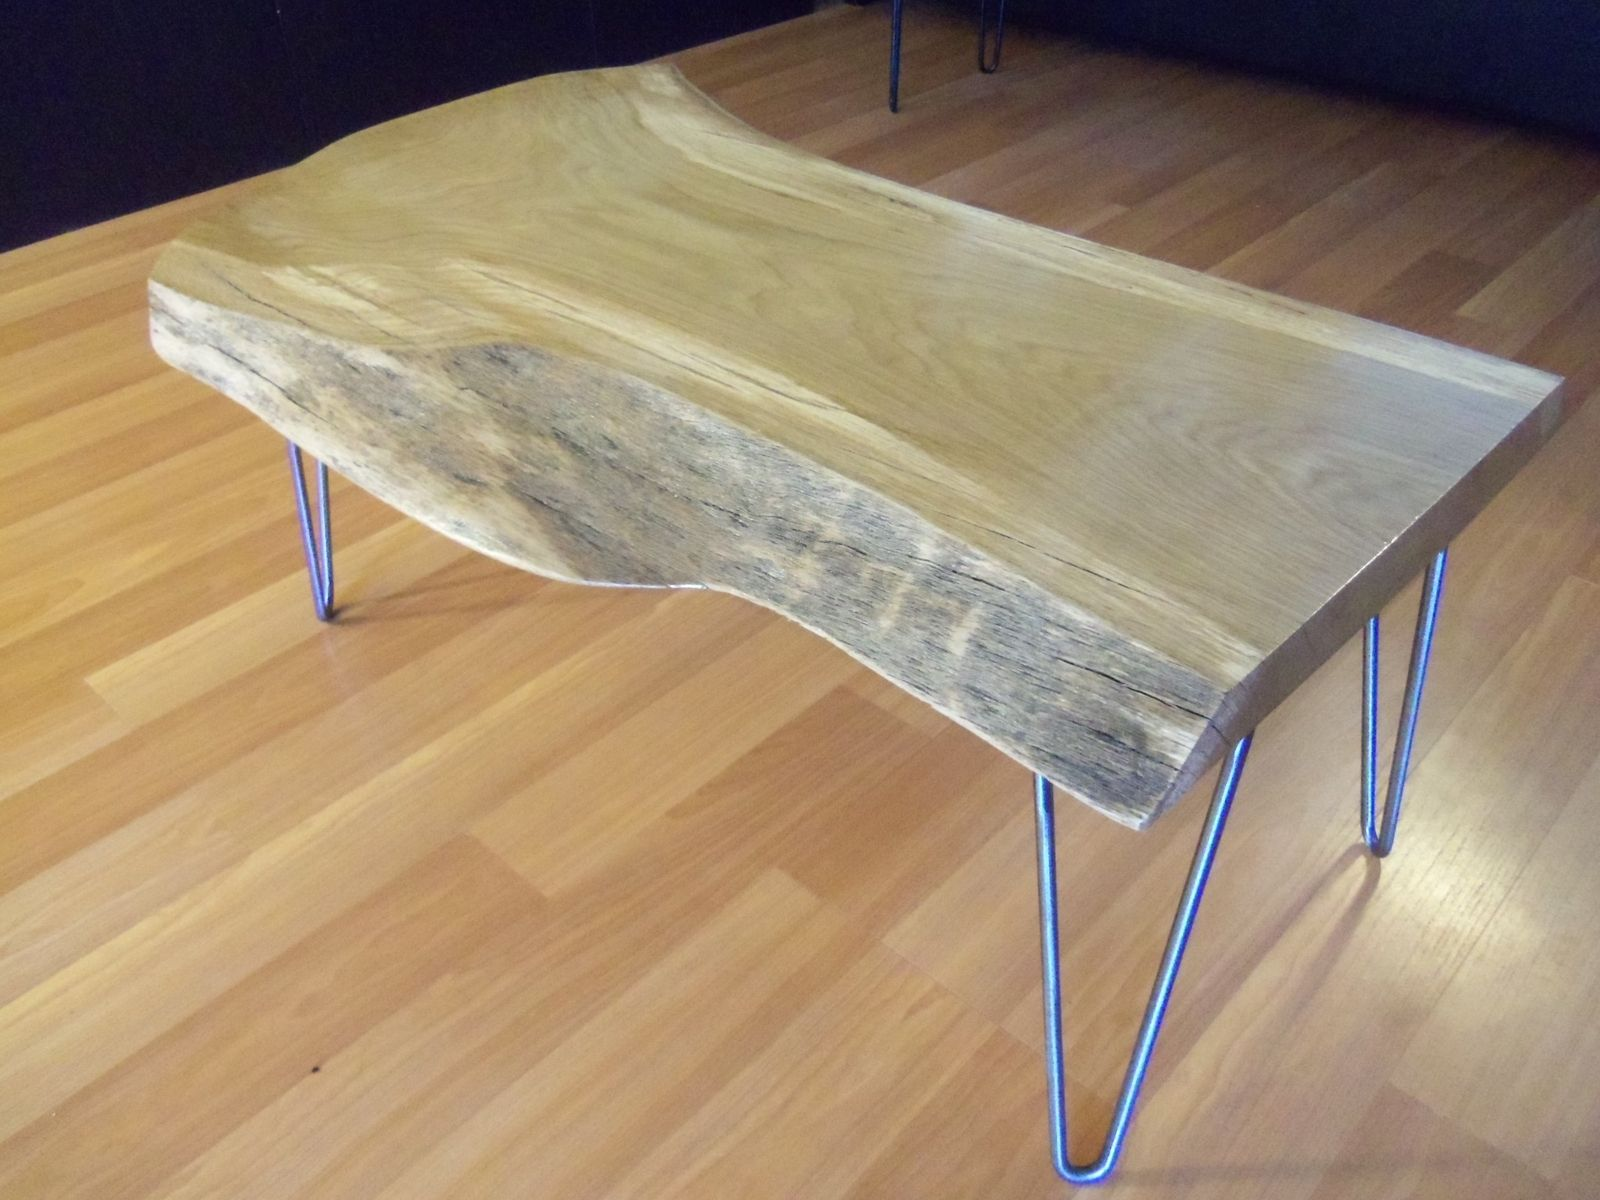 Custom live edge white oak coffee table by ozma design custom made live edge white oak coffee table geotapseo Choice Image